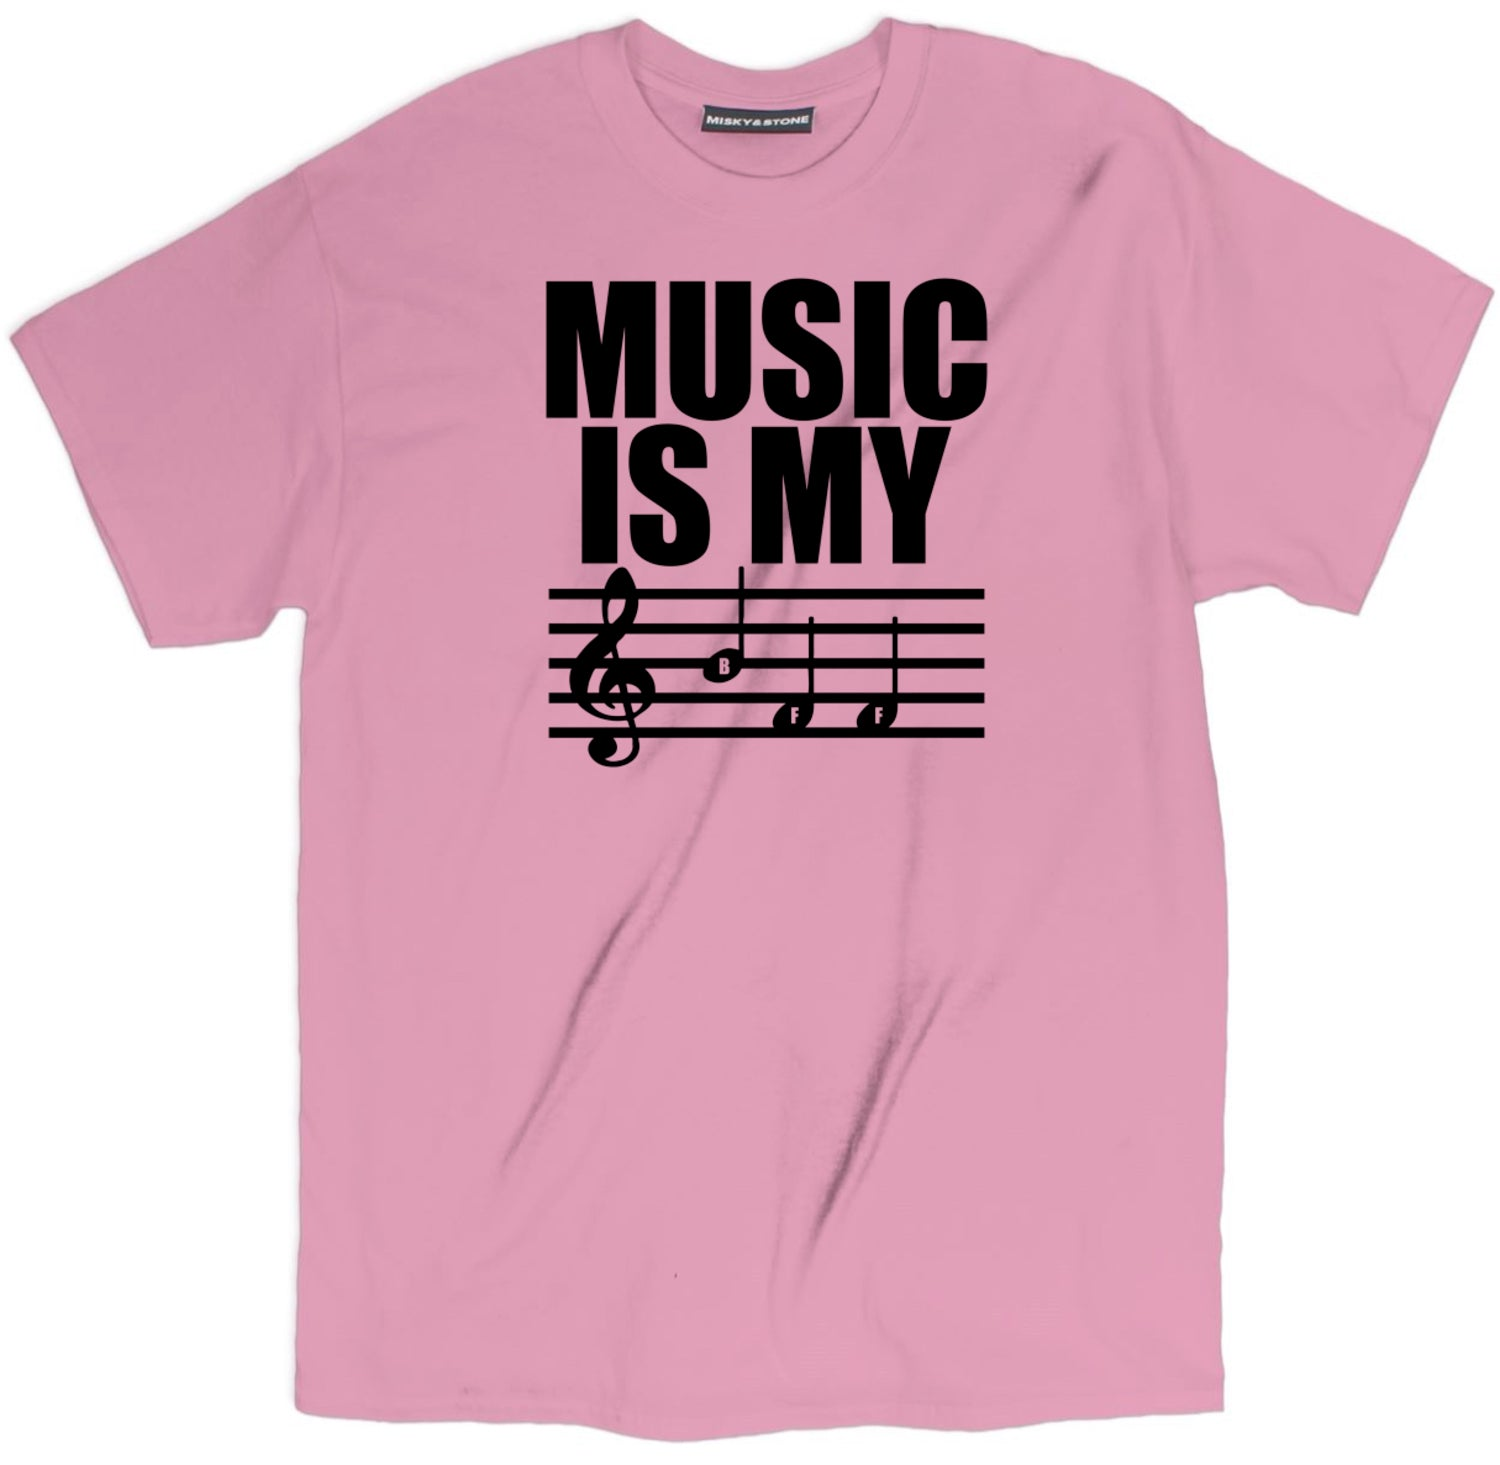 Music Is My Bff Shirt